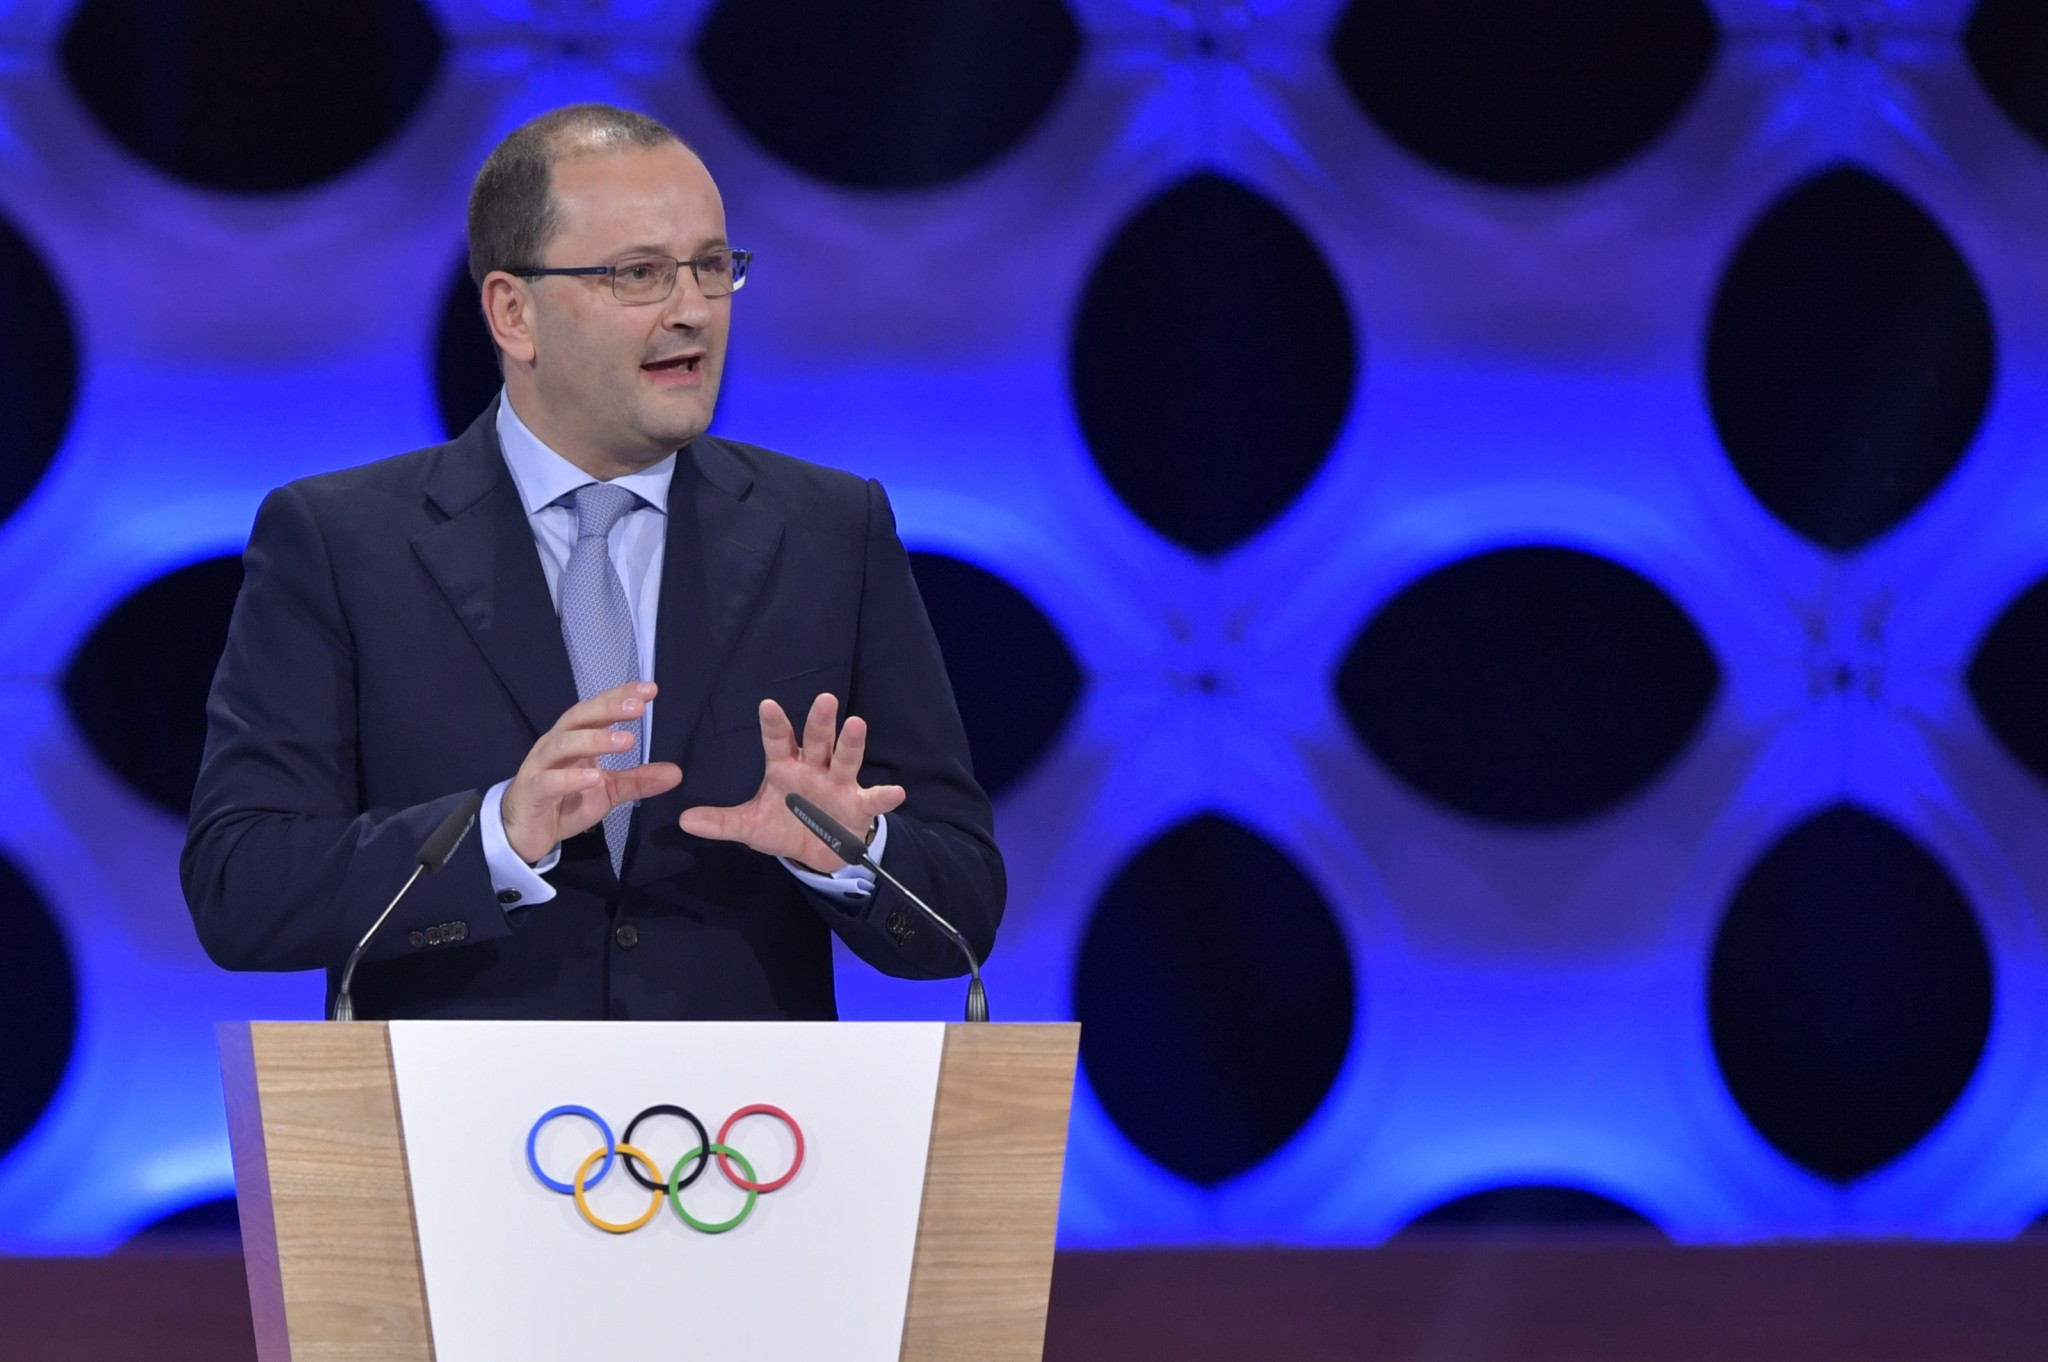 Lausanne 2020 President Patrick Baumann claimed the changes to the format of the Winter Youth Olympic Games would not have an adverse impact on their budget or construction deadlines ©Getty Images